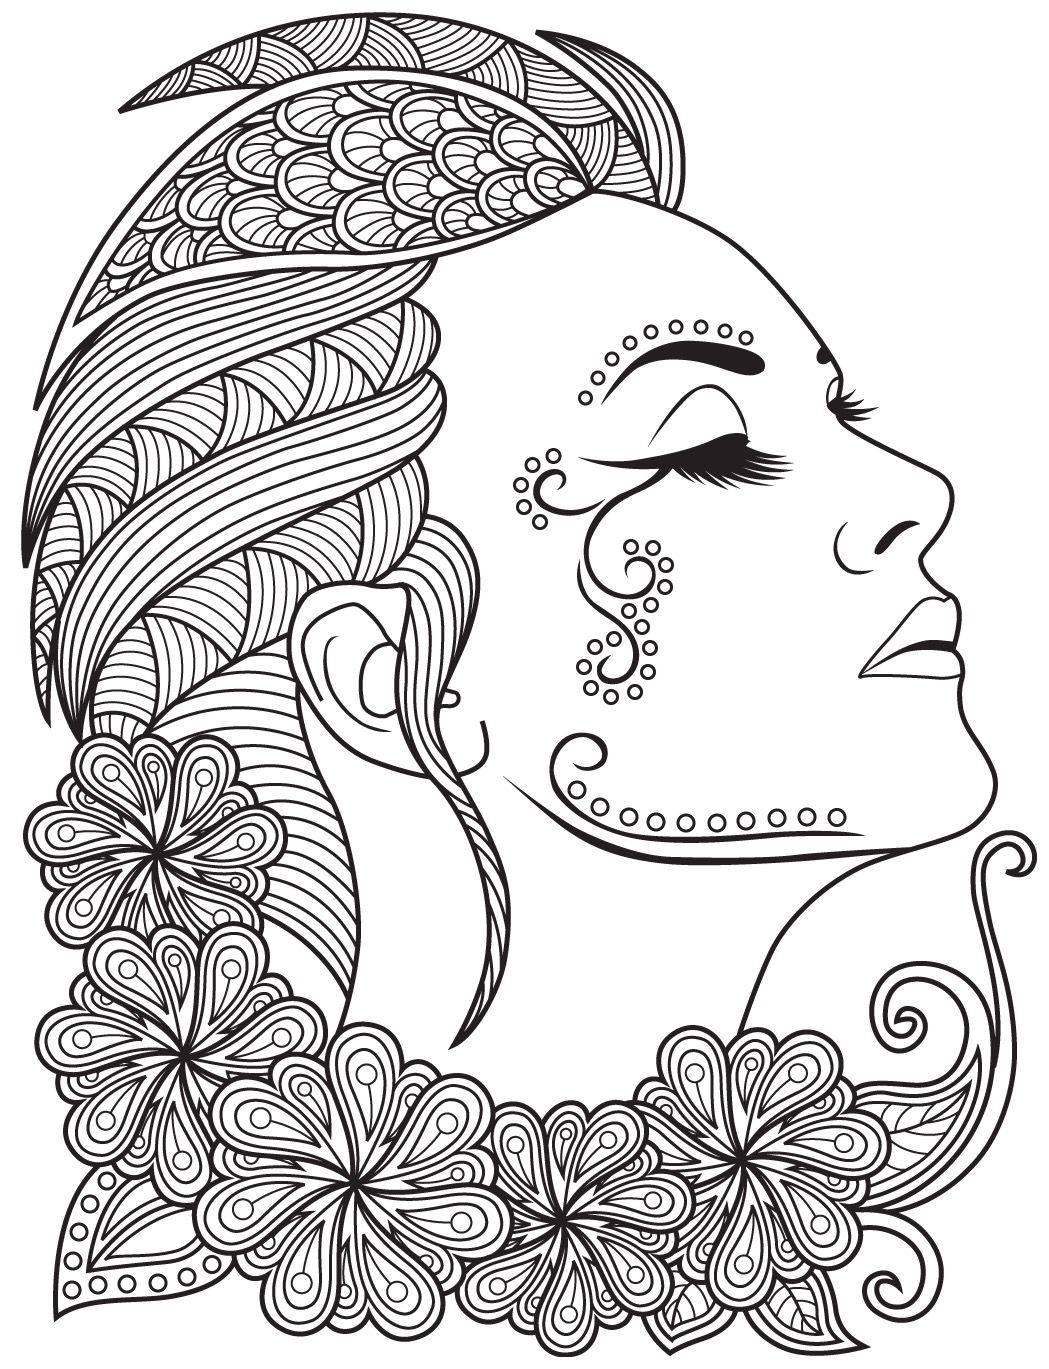 Women Faces To Color Colorish Free Coloring App For Adults By Goodsofttech Mandala Coloring Pages Coloring Apps Mandala Design Art